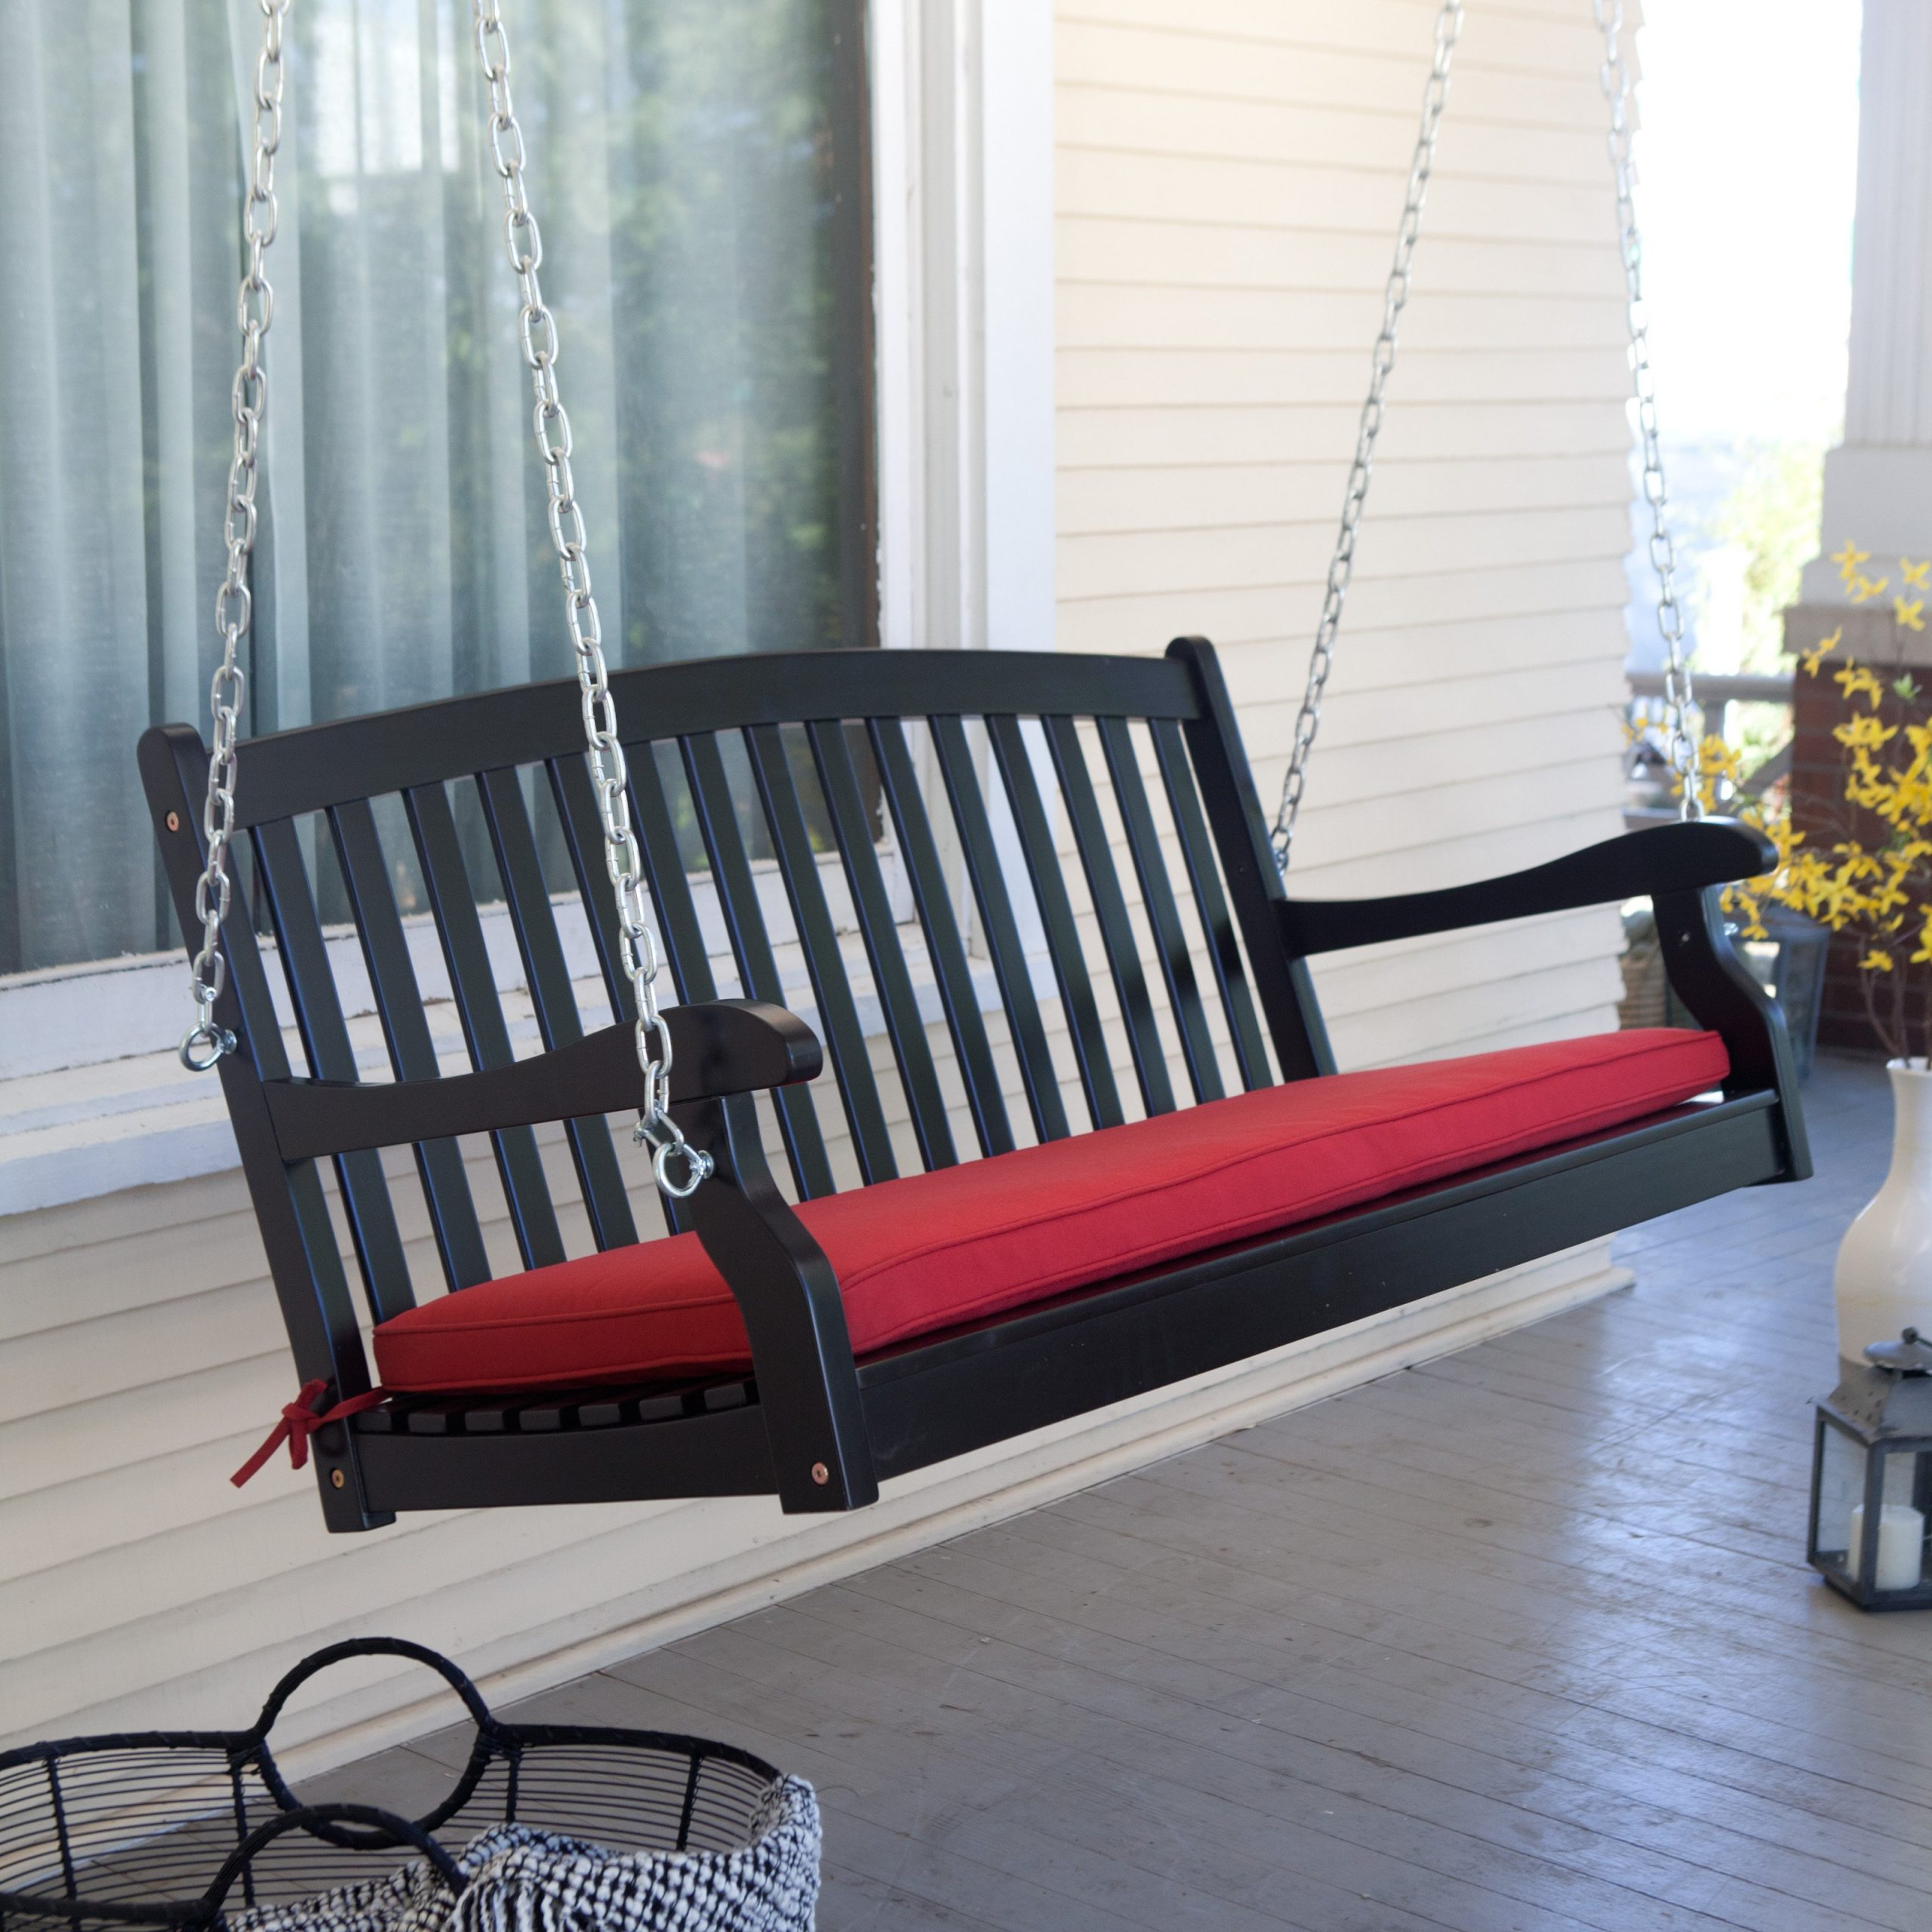 2020 Coral Coast Pleasant Bay Black Curved Back Porch Swing With Within 5 Ft Cedar Swings With Springs (View 15 of 30)